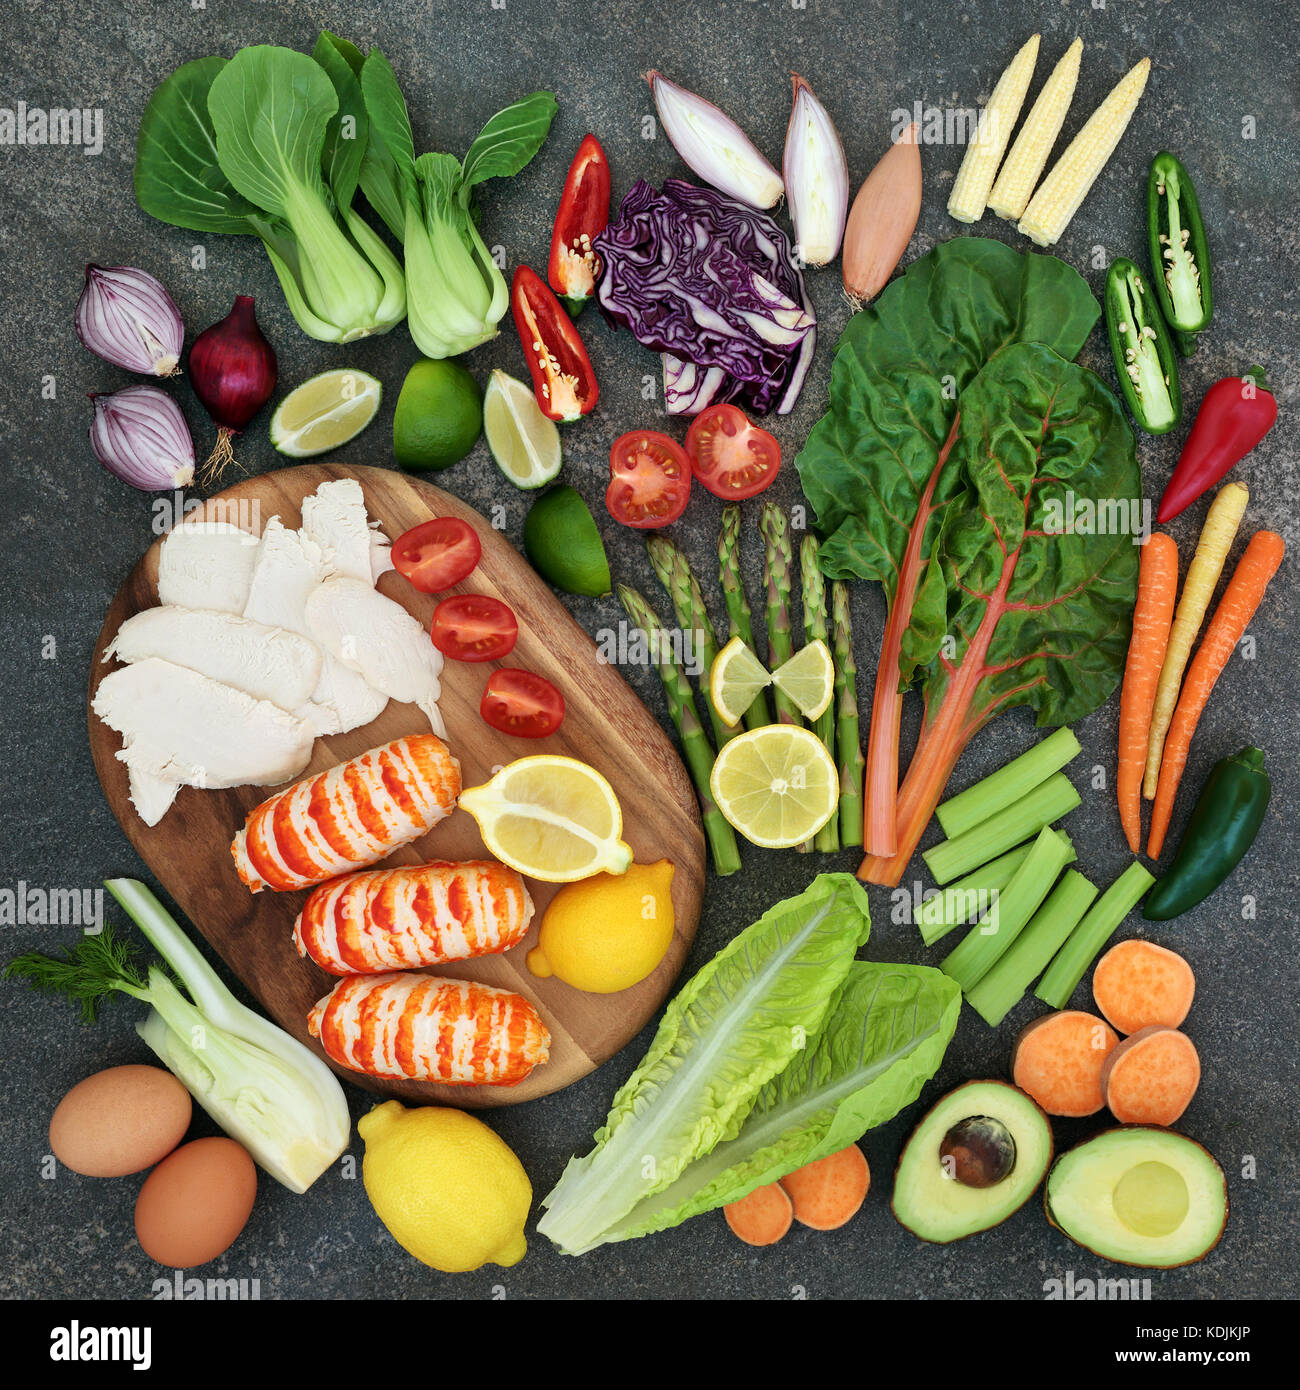 Diet health food concept with high protein meat and fish, vegetables, fruit, and dairy. Superfoods high in omega - Stock Image